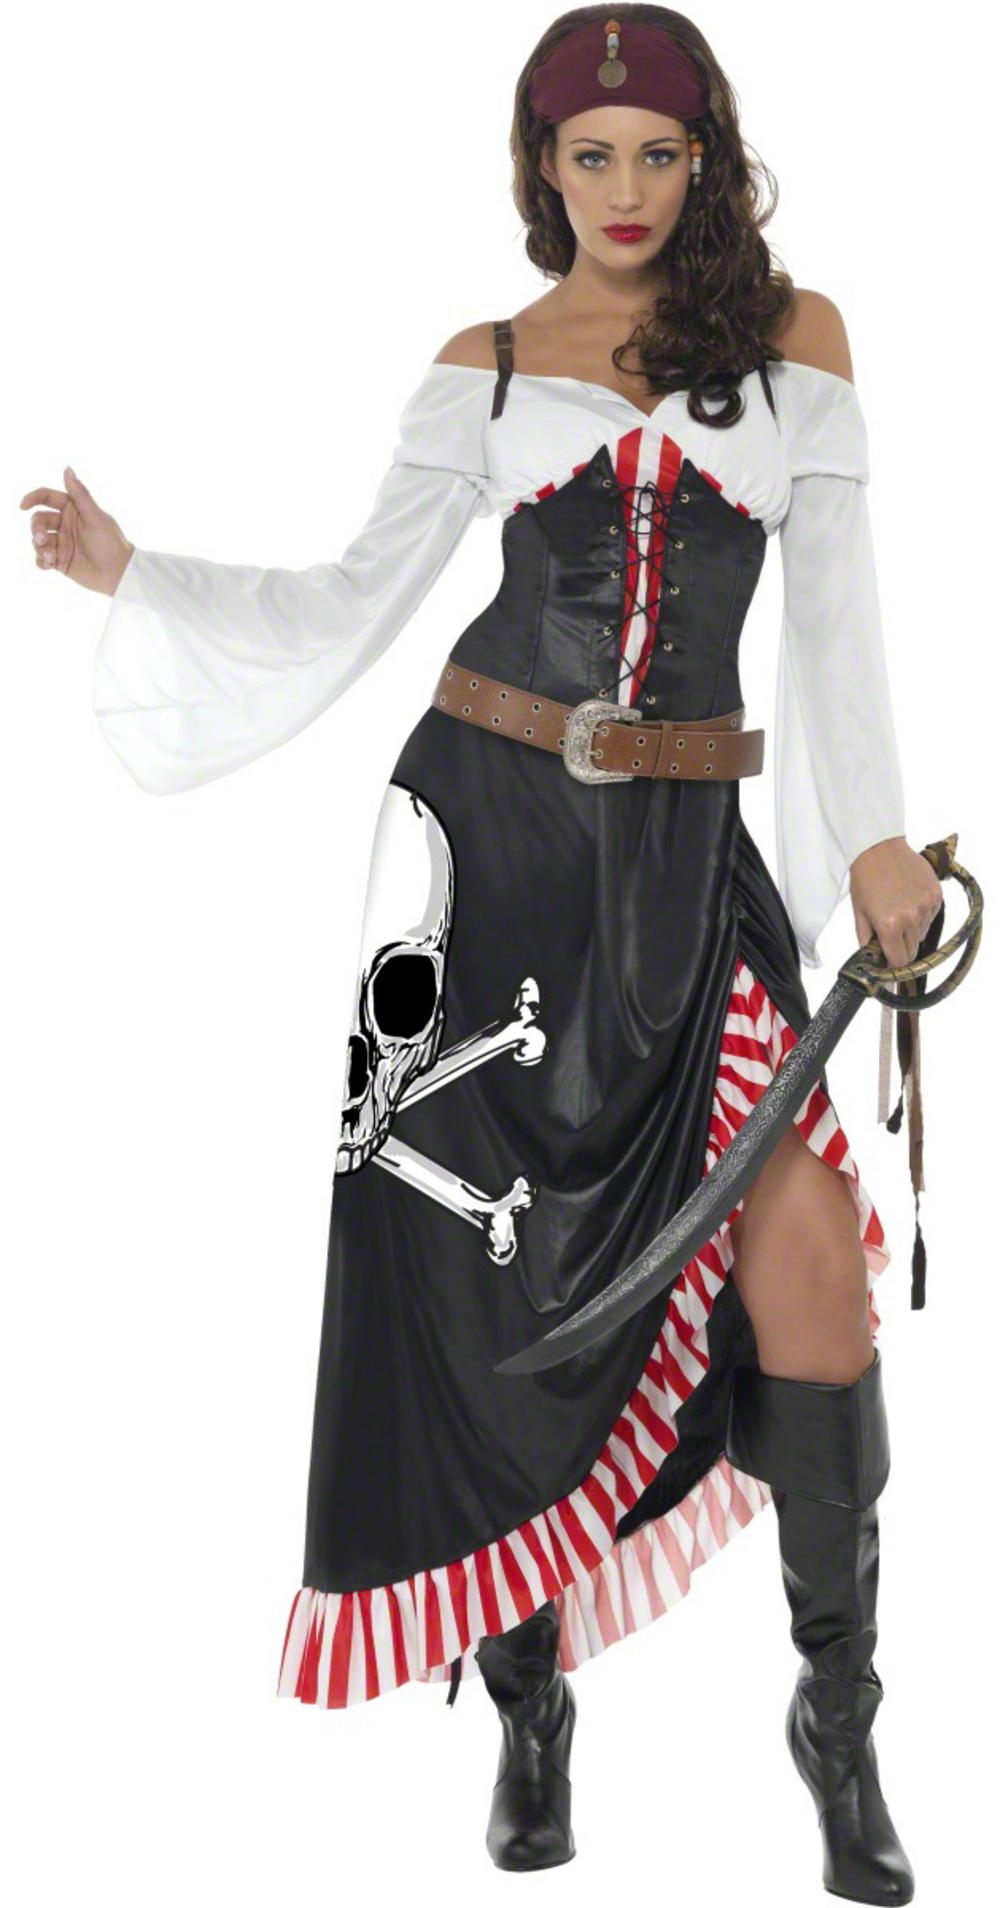 Swashbuckler Pirate Costume